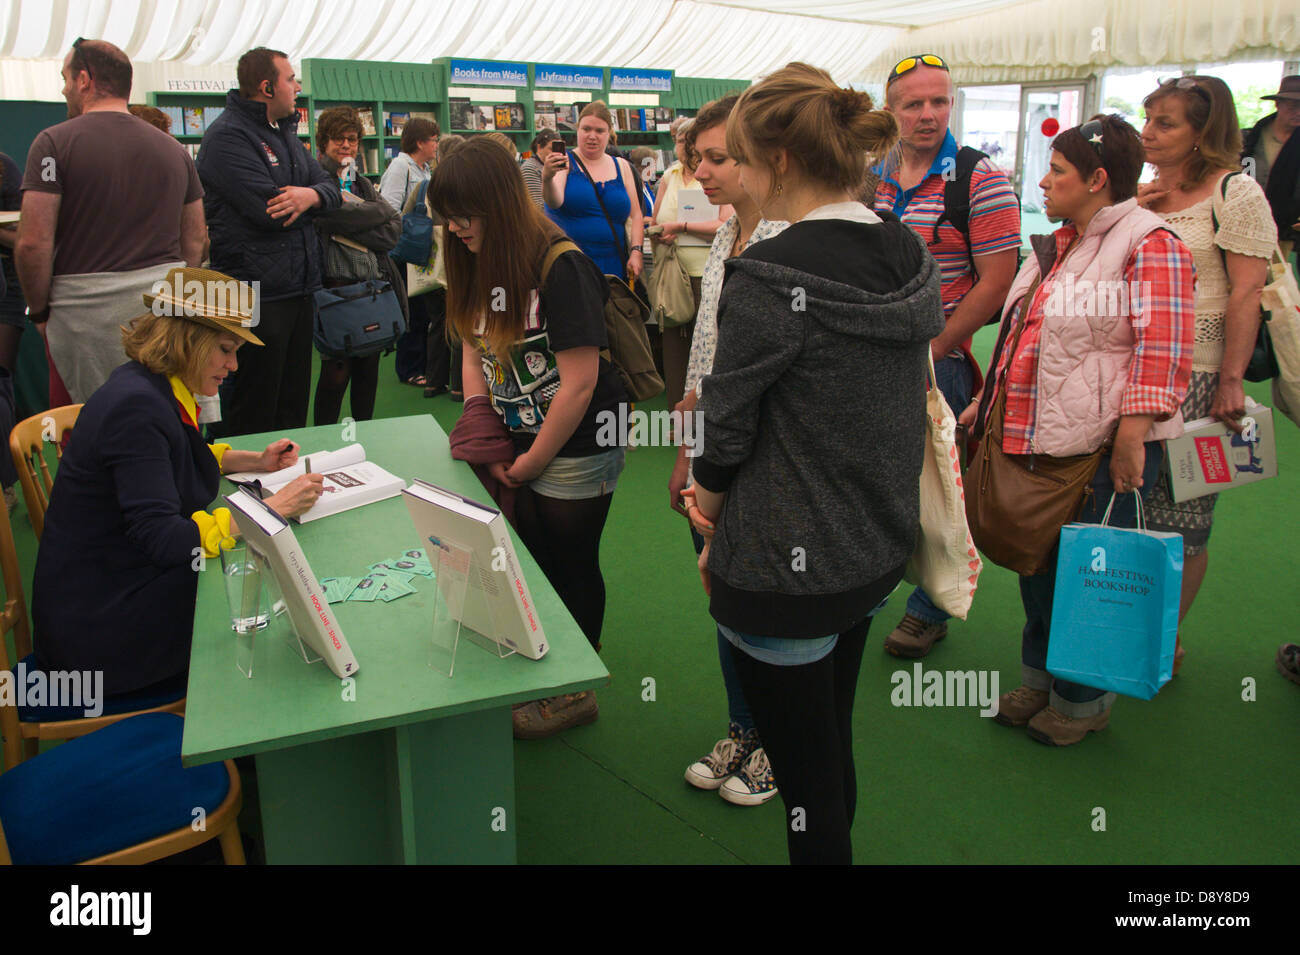 Cerys Matthews book signing for fans in the bookshop at Hay Festival 2013 Hay on Wye Powys Wales UK - Stock Image